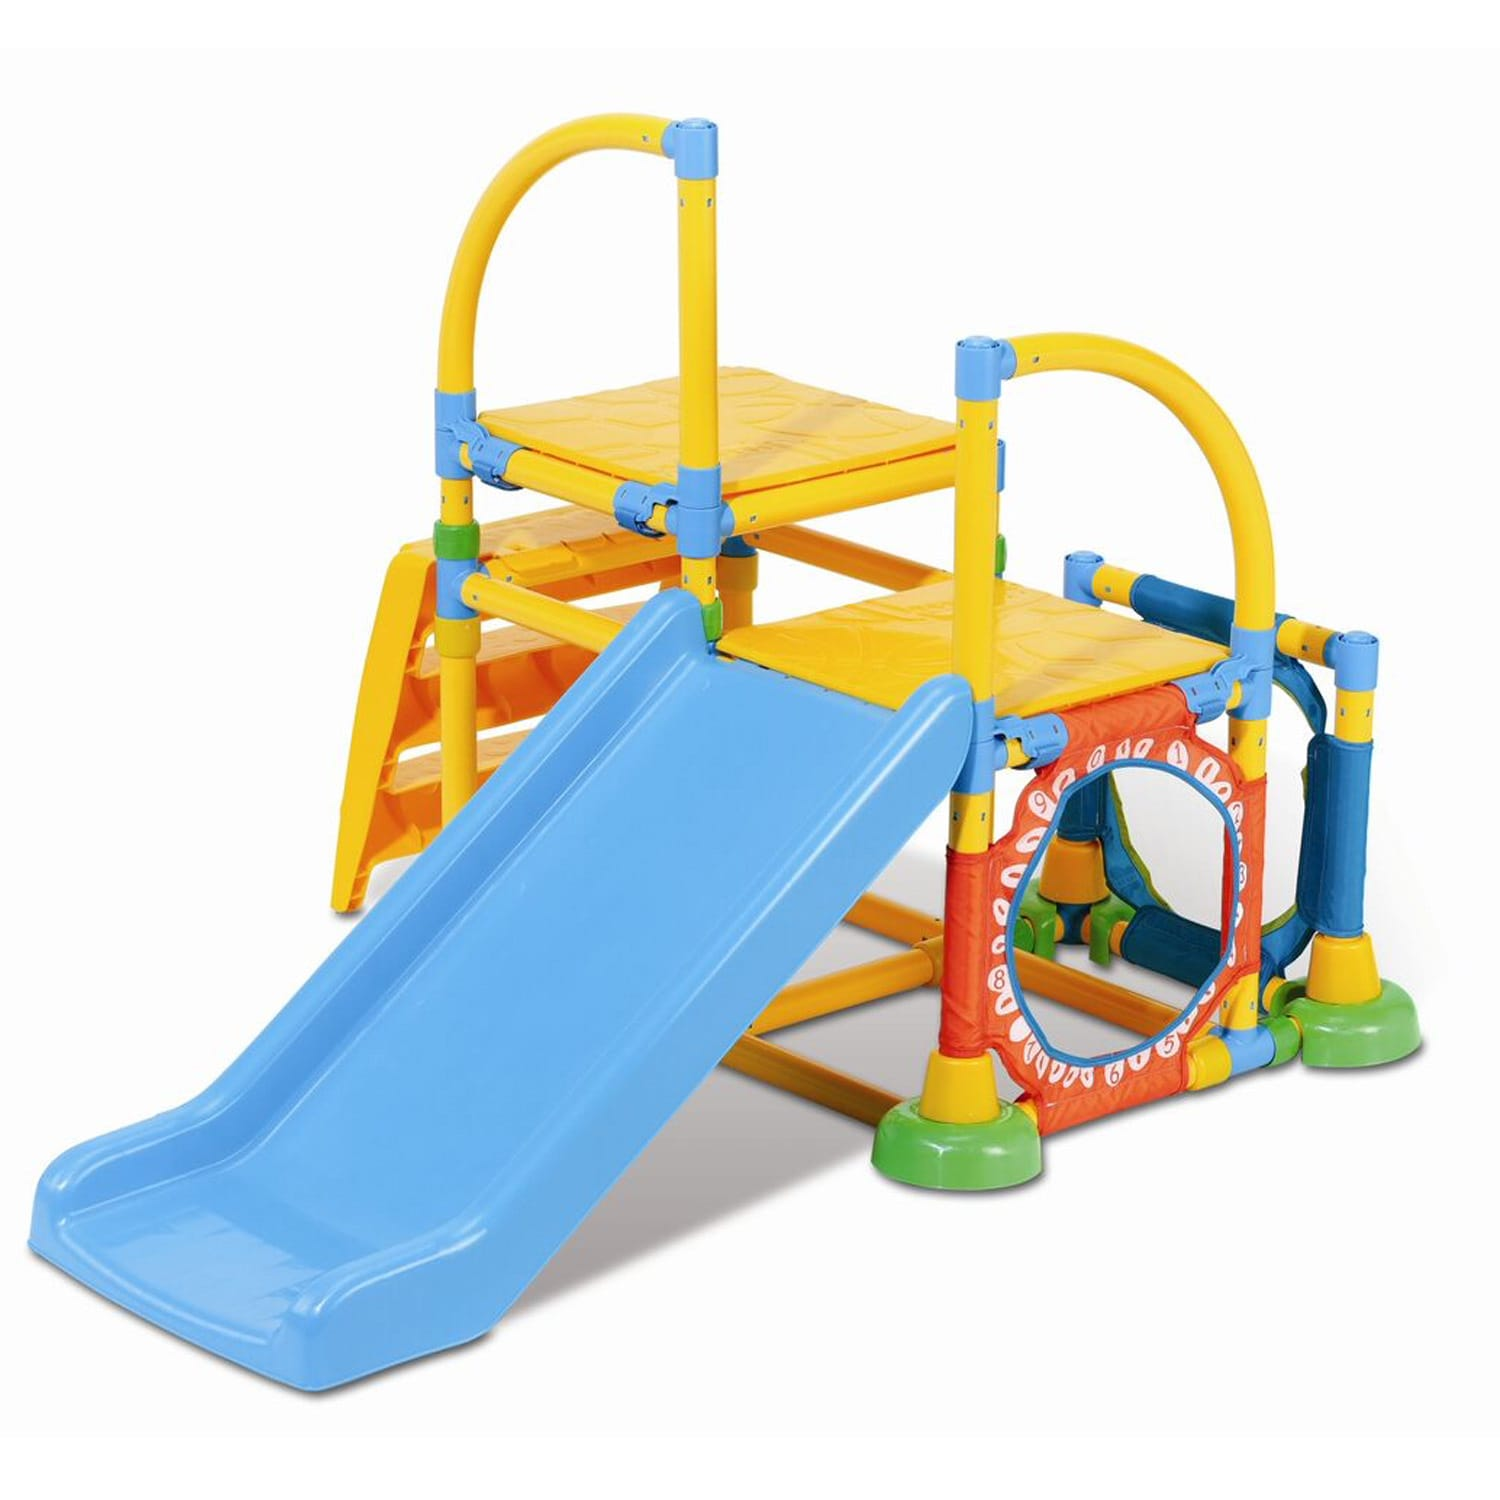 Play Sets | Find Great Toys & Hobbies Deals Shopping at Overstock.com